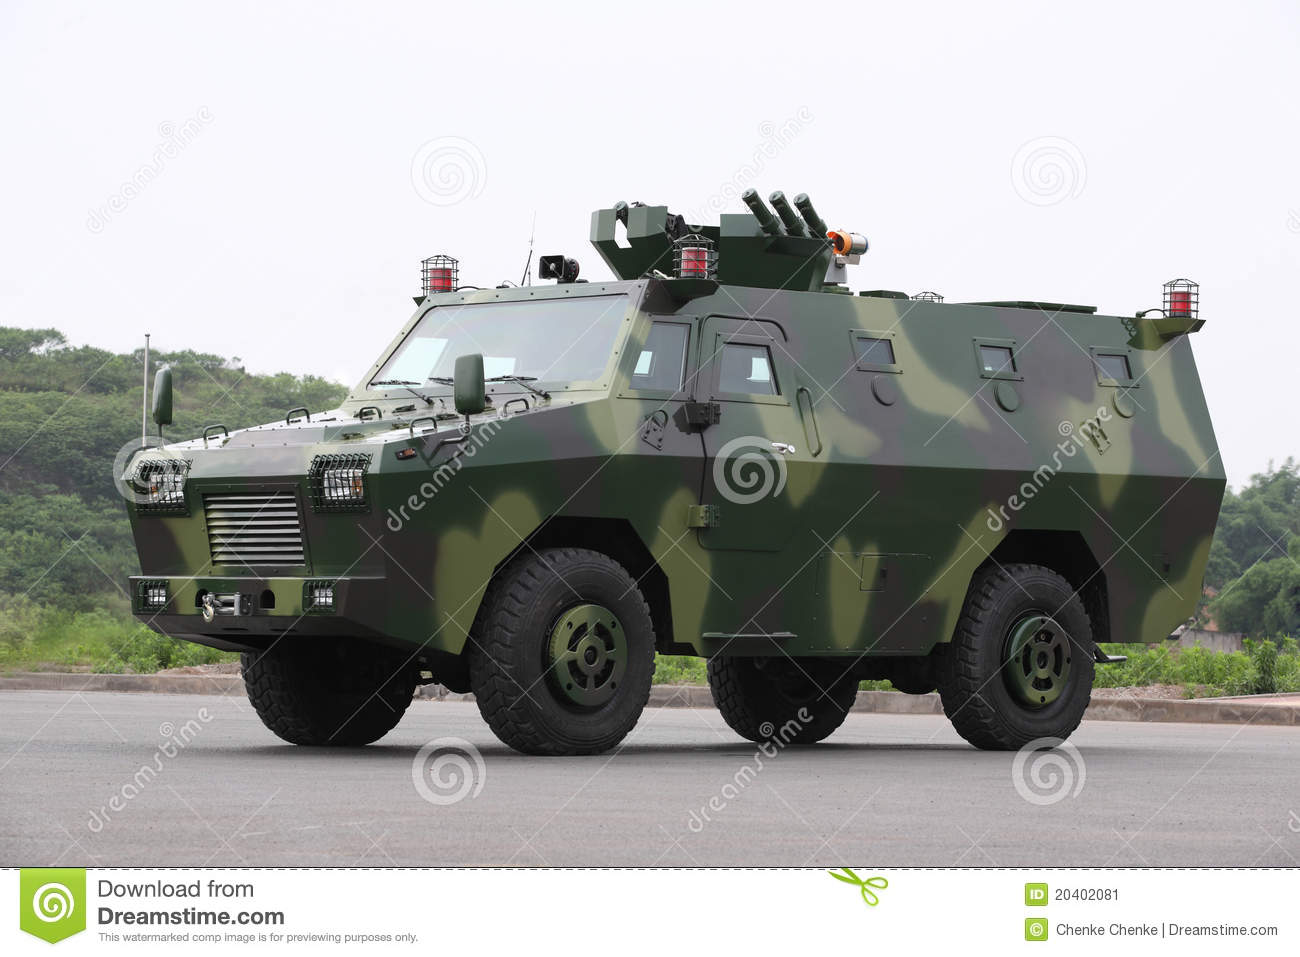 Armored vehicles